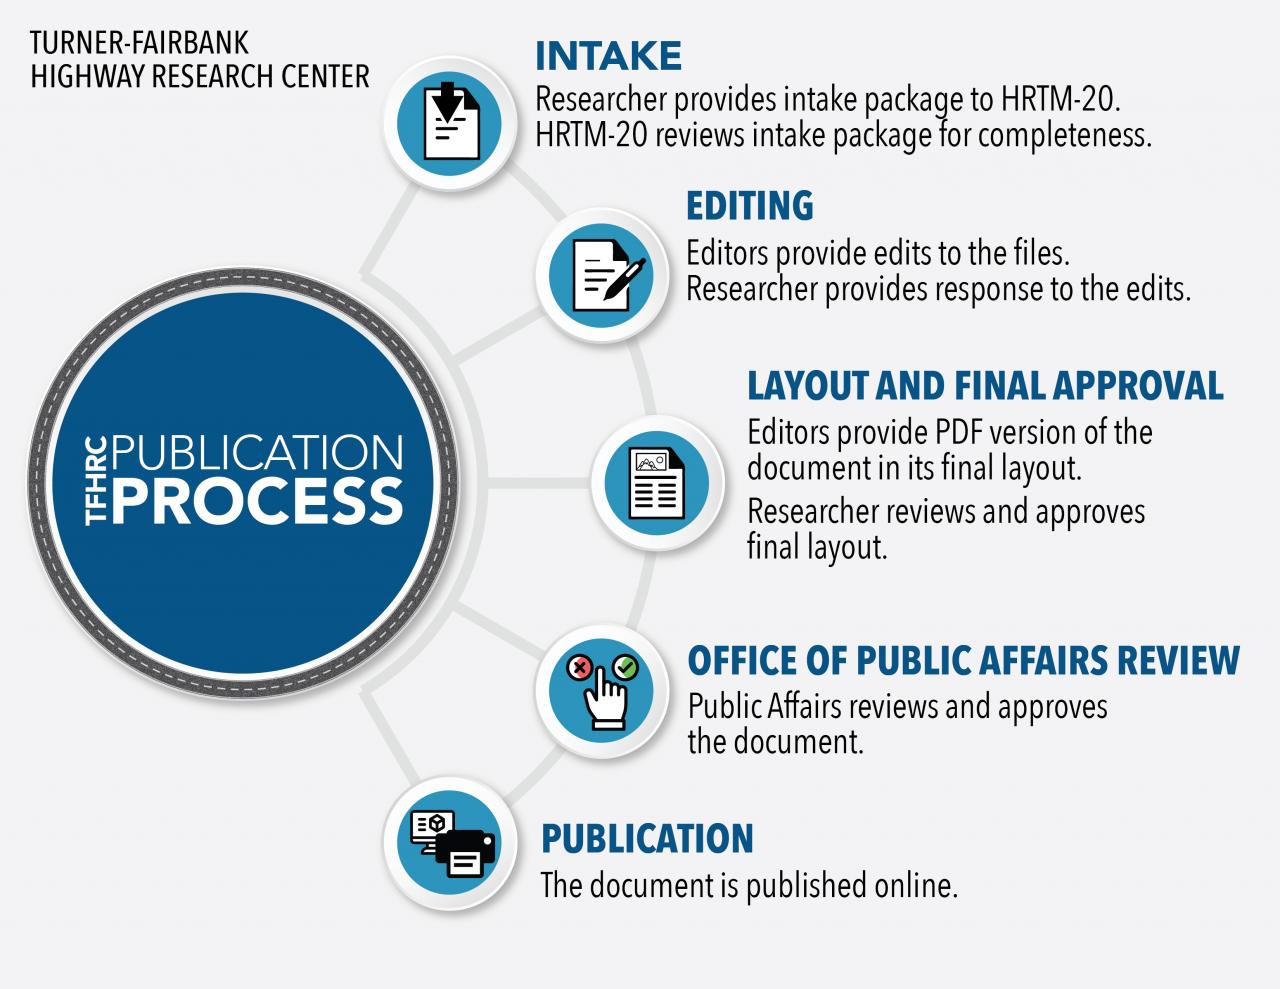 This infographic depicts the steps of the Turner-Fairbank Highway Research Center publication process as spokes coming off an arc.  During the intake phase, the researcher provides the intake package to the Office of Marketing and Communications (HRTM-20).  HRTM-20 then reviews the intake package for completeness.  During the editing phase, editors provide edits to the files, and the researcher provides a response to the edits.  During the layout and final approval phase, editors provide a PDF version of the document in its final layout.  The researcher then reviews and approves the final layout.  During the Office of Public Affairs Review phase, Public Affairs reviews and approves the document.  Finally, during the publication phase, the document is published online.